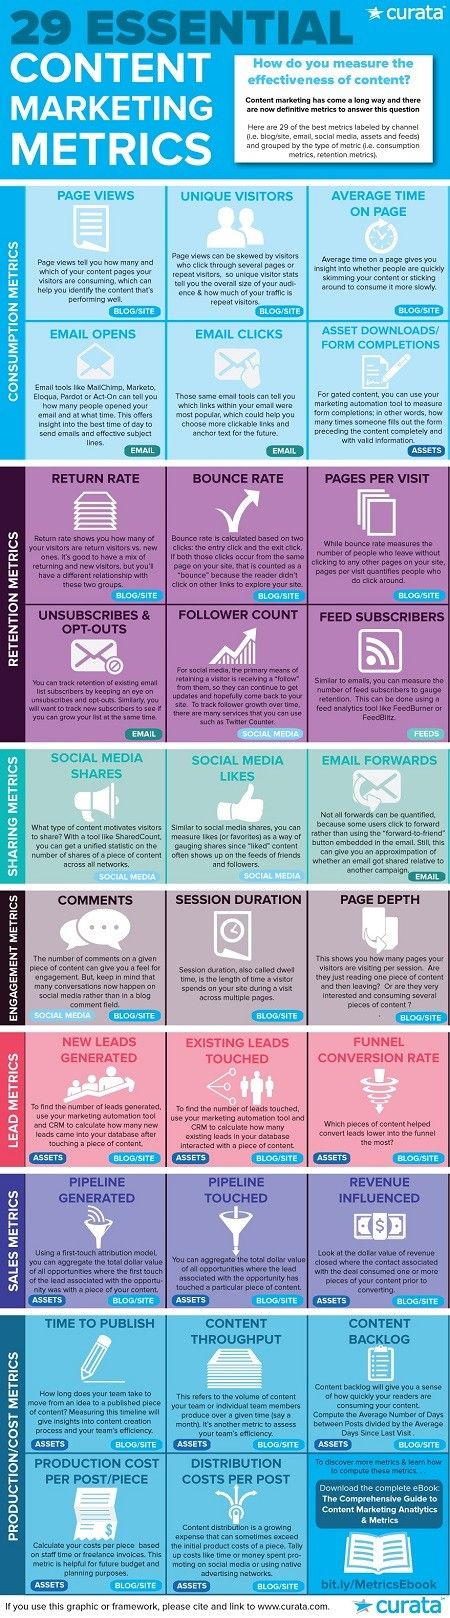 29 Essential Content Marketing Metrics #Infographic